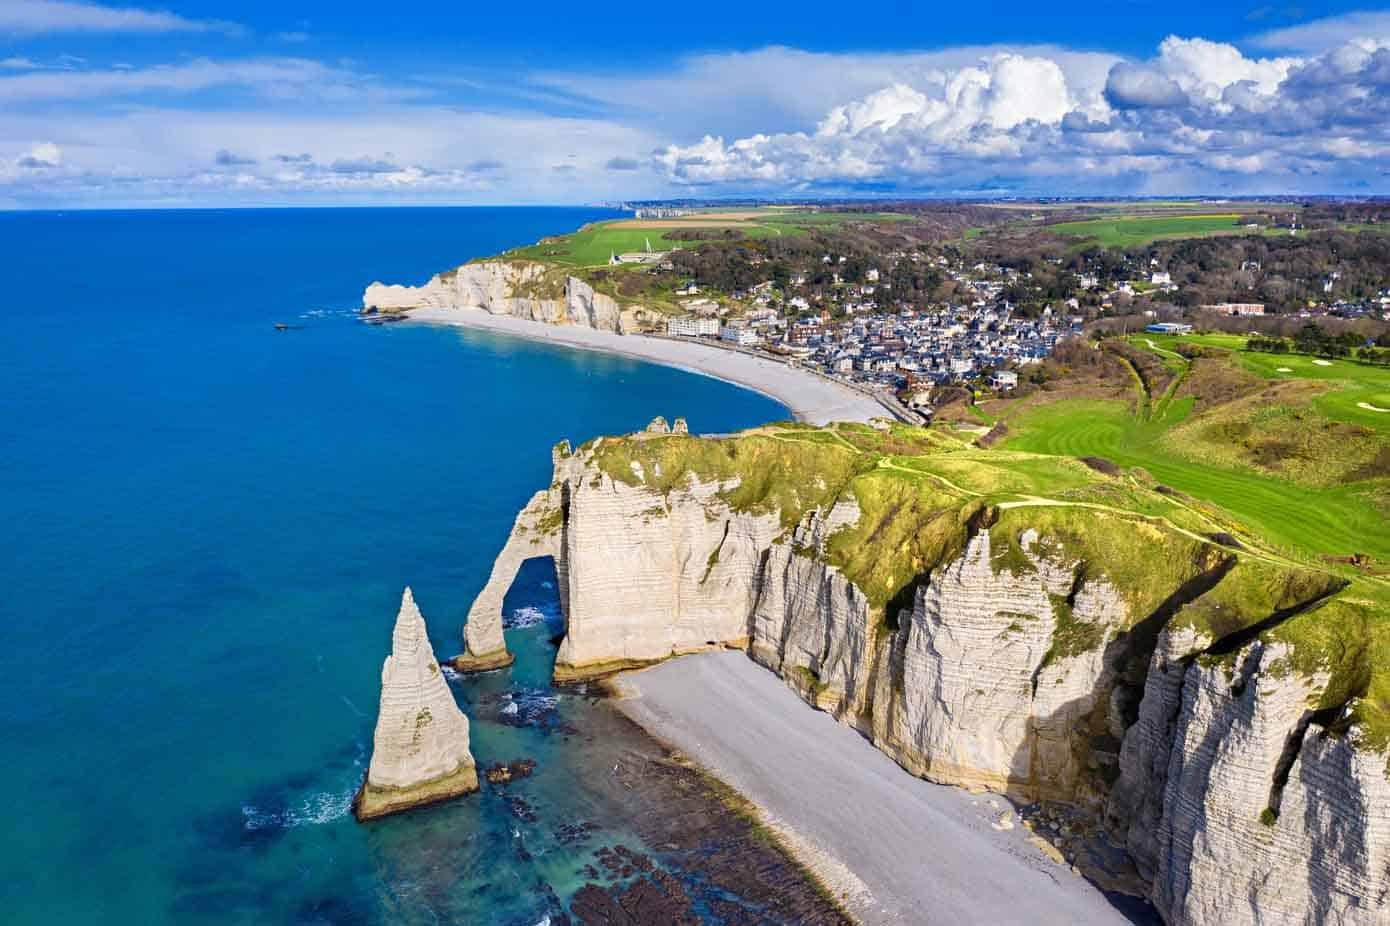 Huge cliffs, blue ocean, and spanning beaches with a little village in Normandy, France.